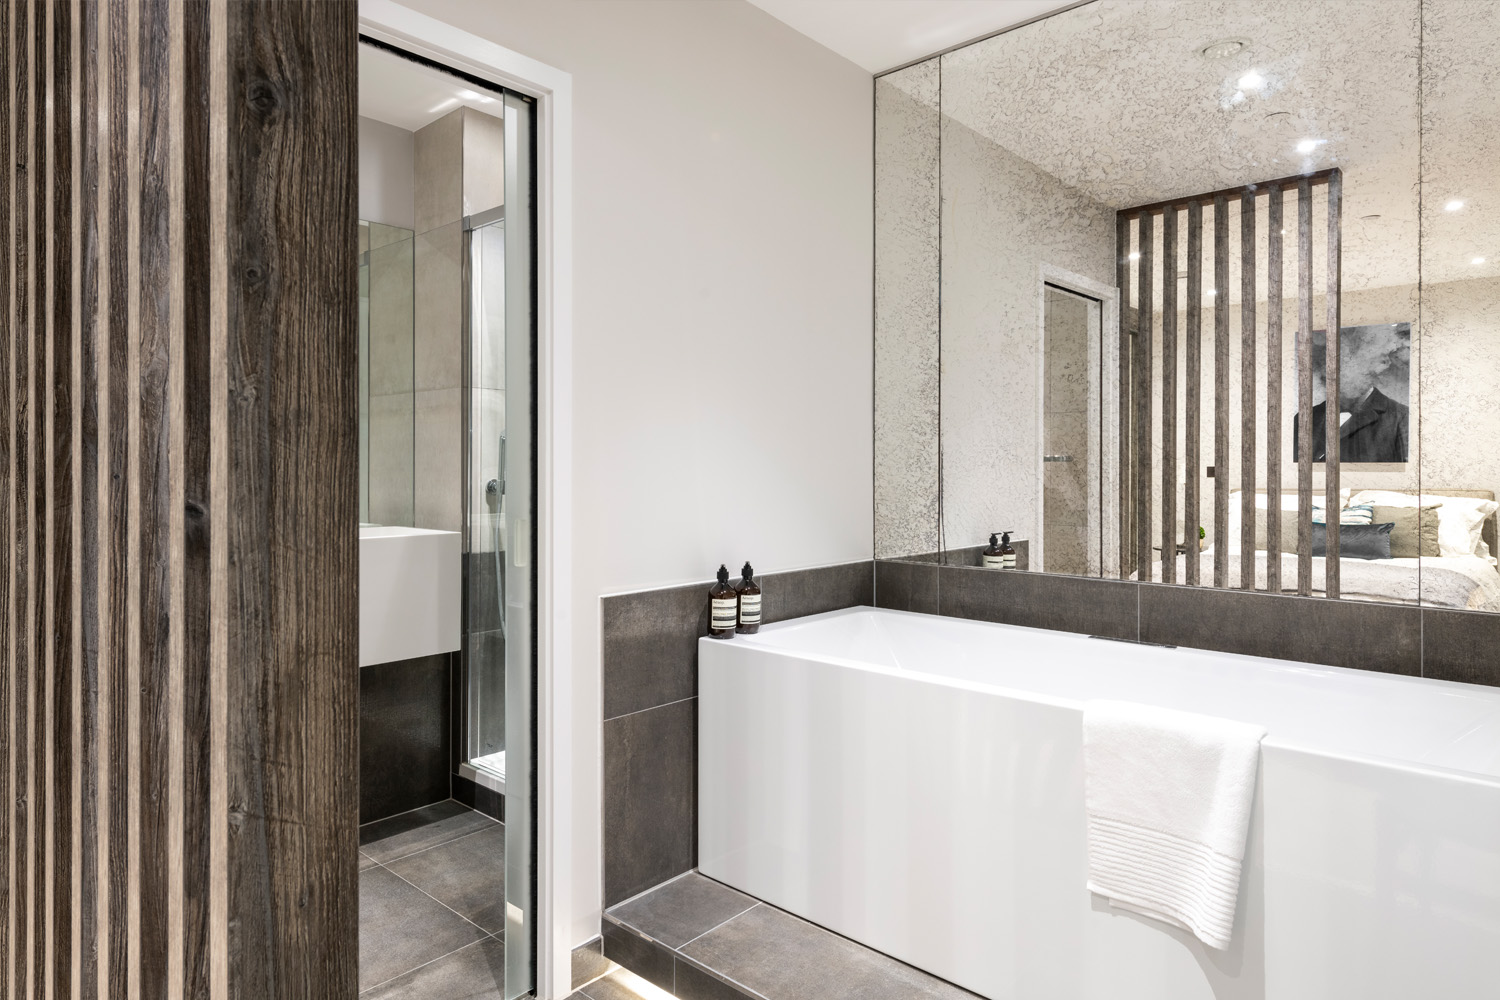 SUNA INTERIOR DESIGN_PEABODY_WHARF ROAD_ISLINGTON_BATHROOM DESIGN 002.jpg